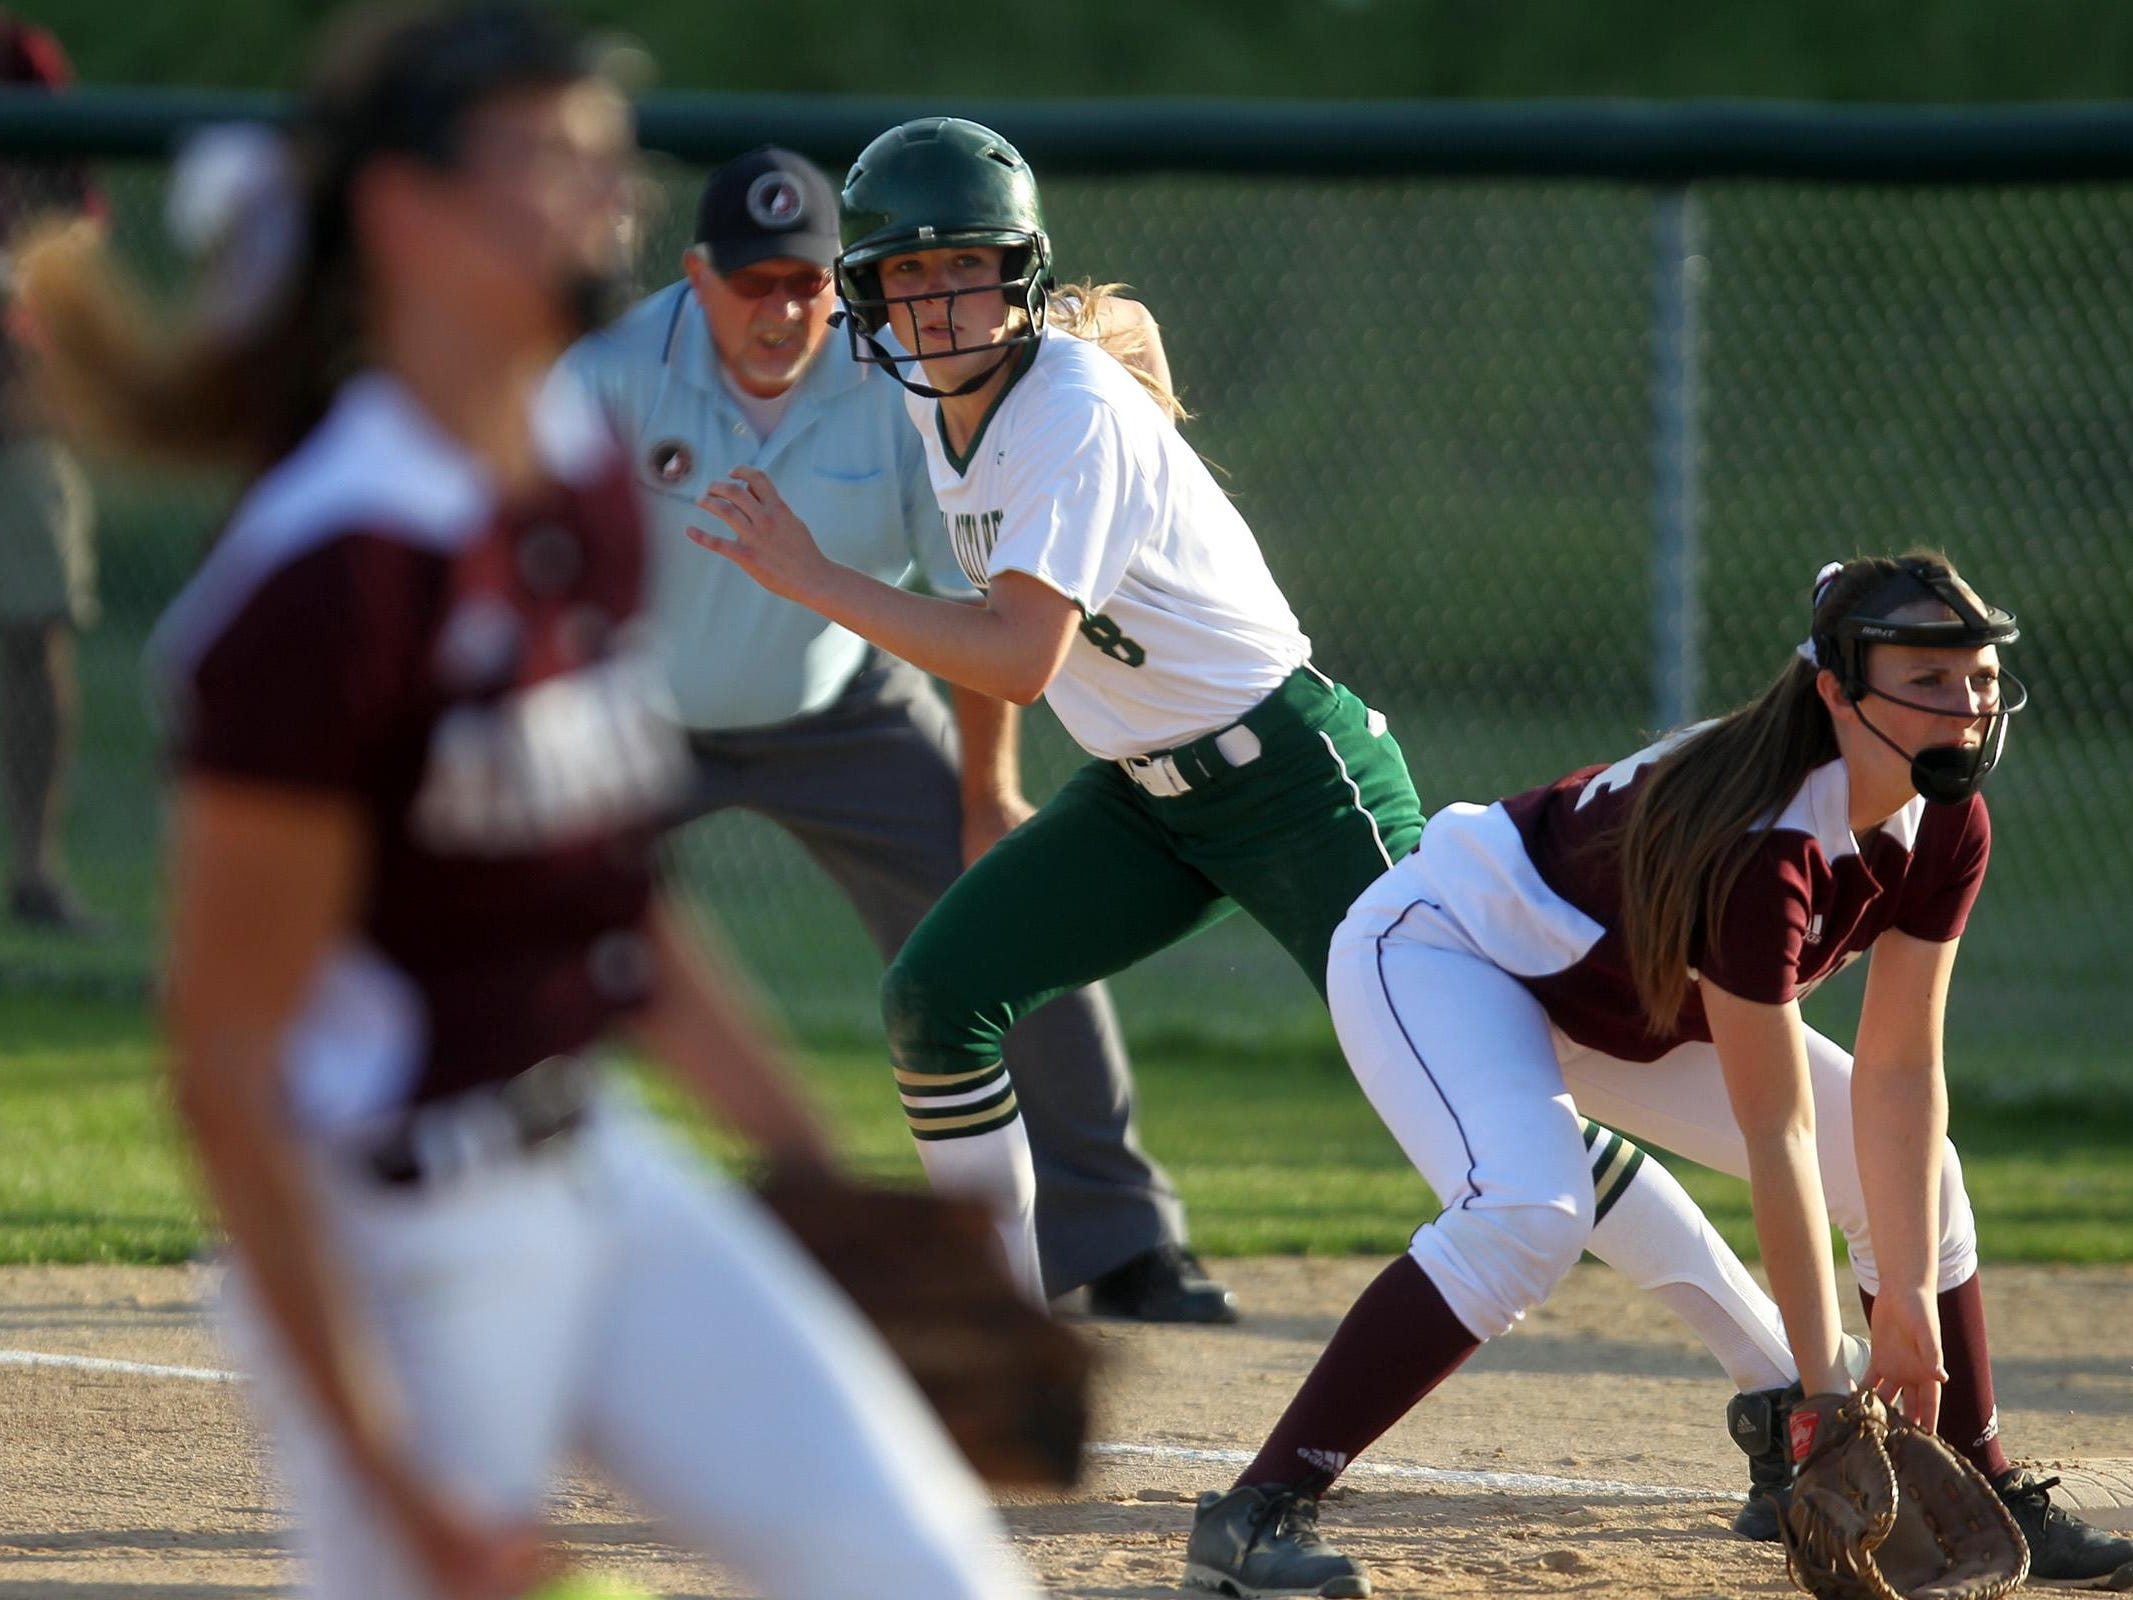 West High's Christine Kallsen leads off first base during the Women of Troy's Class 5A regional championship game against Ankeny at West High on Tuesday, July 14, 2015. Ankeny won, 3-1, to head to state. David Scrivner / Iowa City Press-Citizen